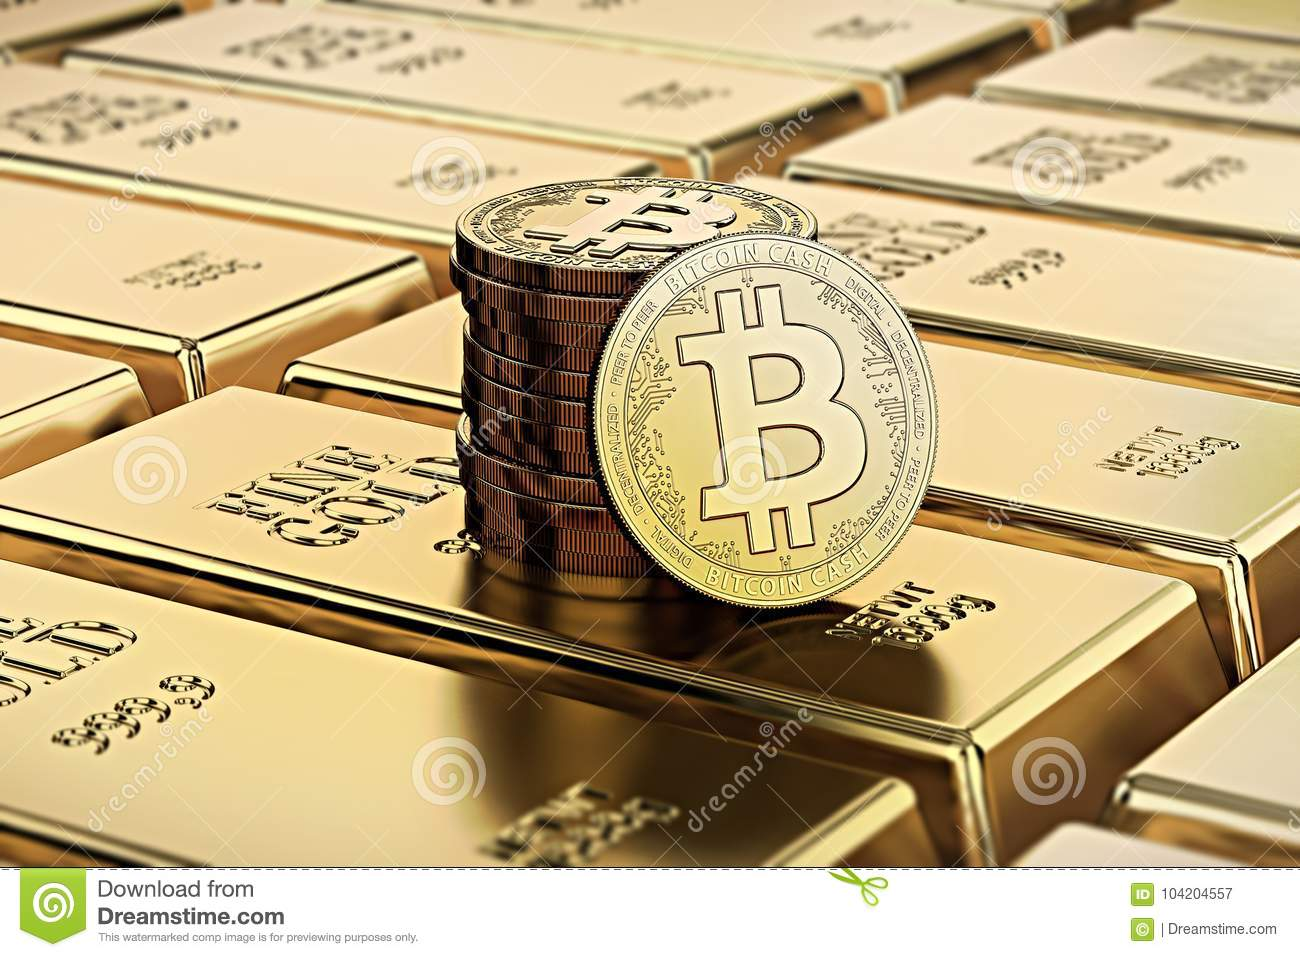 Bitcoin Cash Coins Laying On Stacked Gold Bars Ingots Rendered With Shallow Depth Of Field